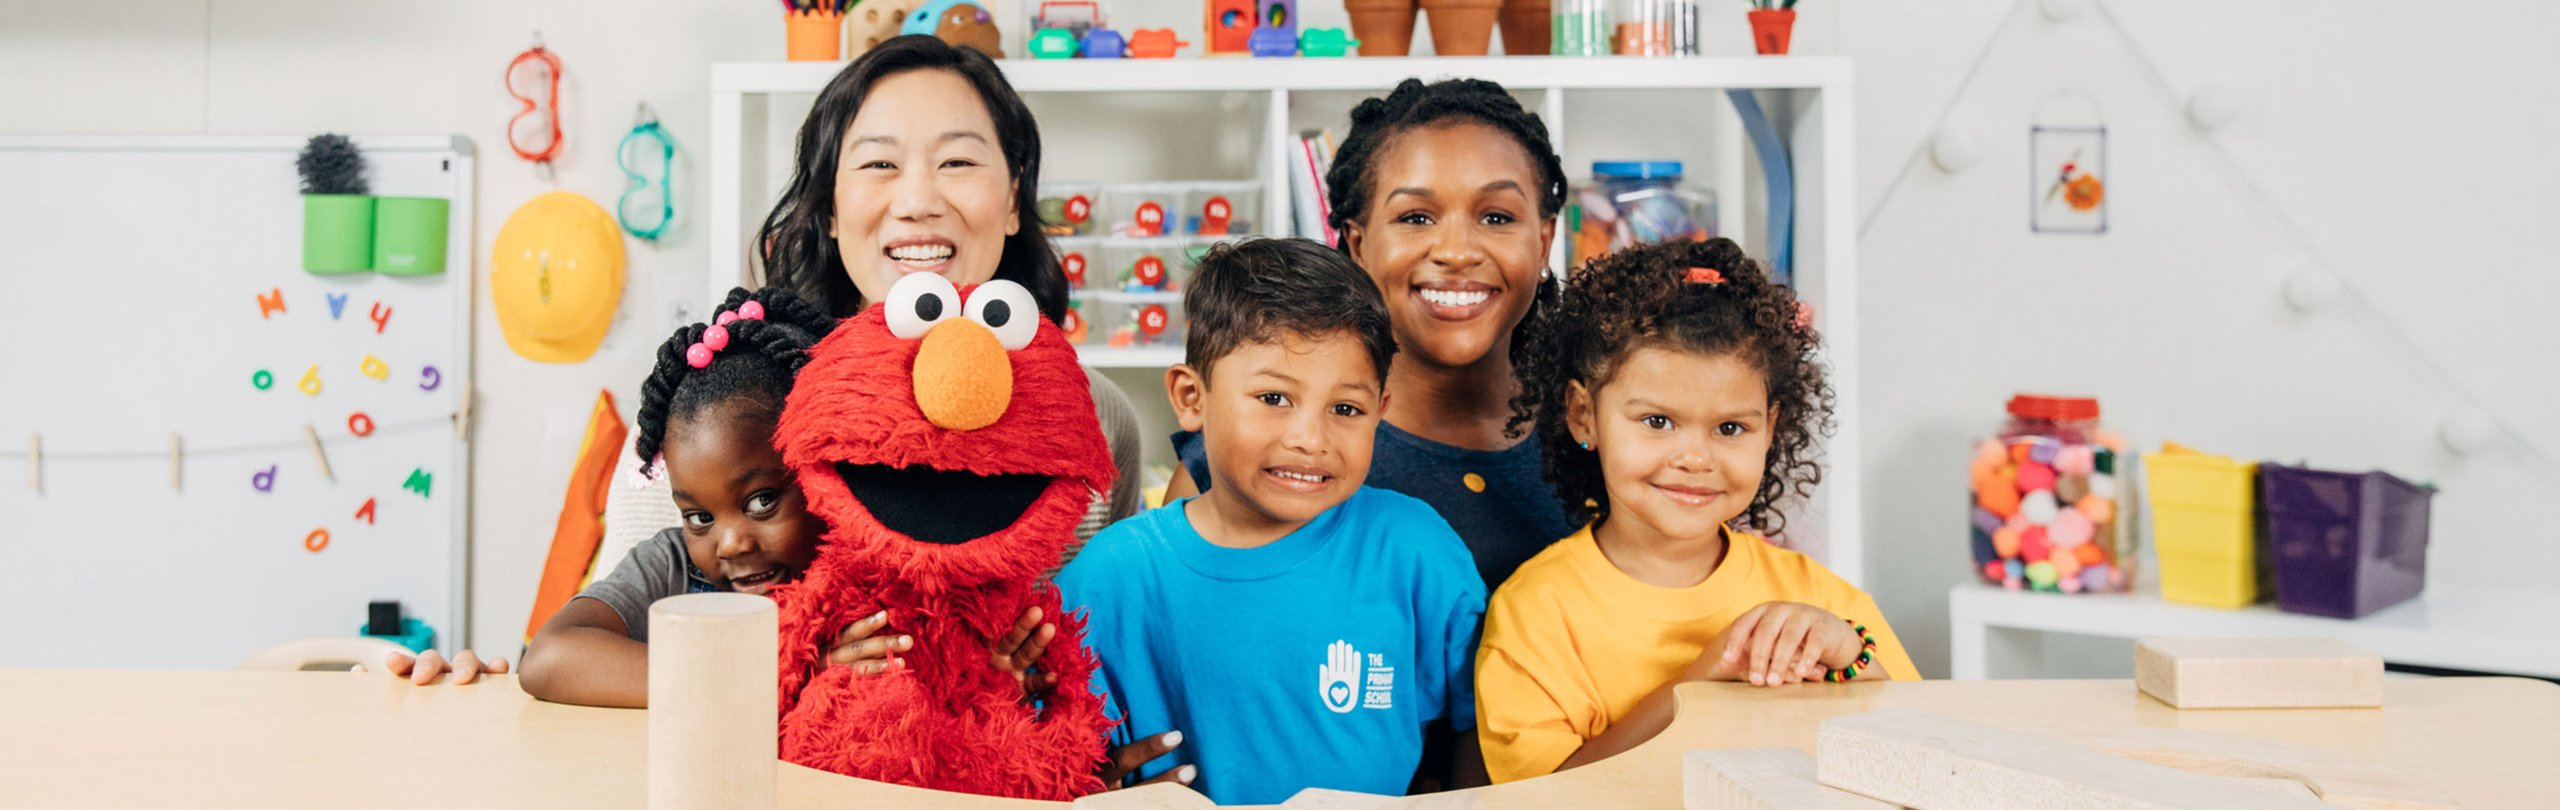 Elmo with teachers and children smile